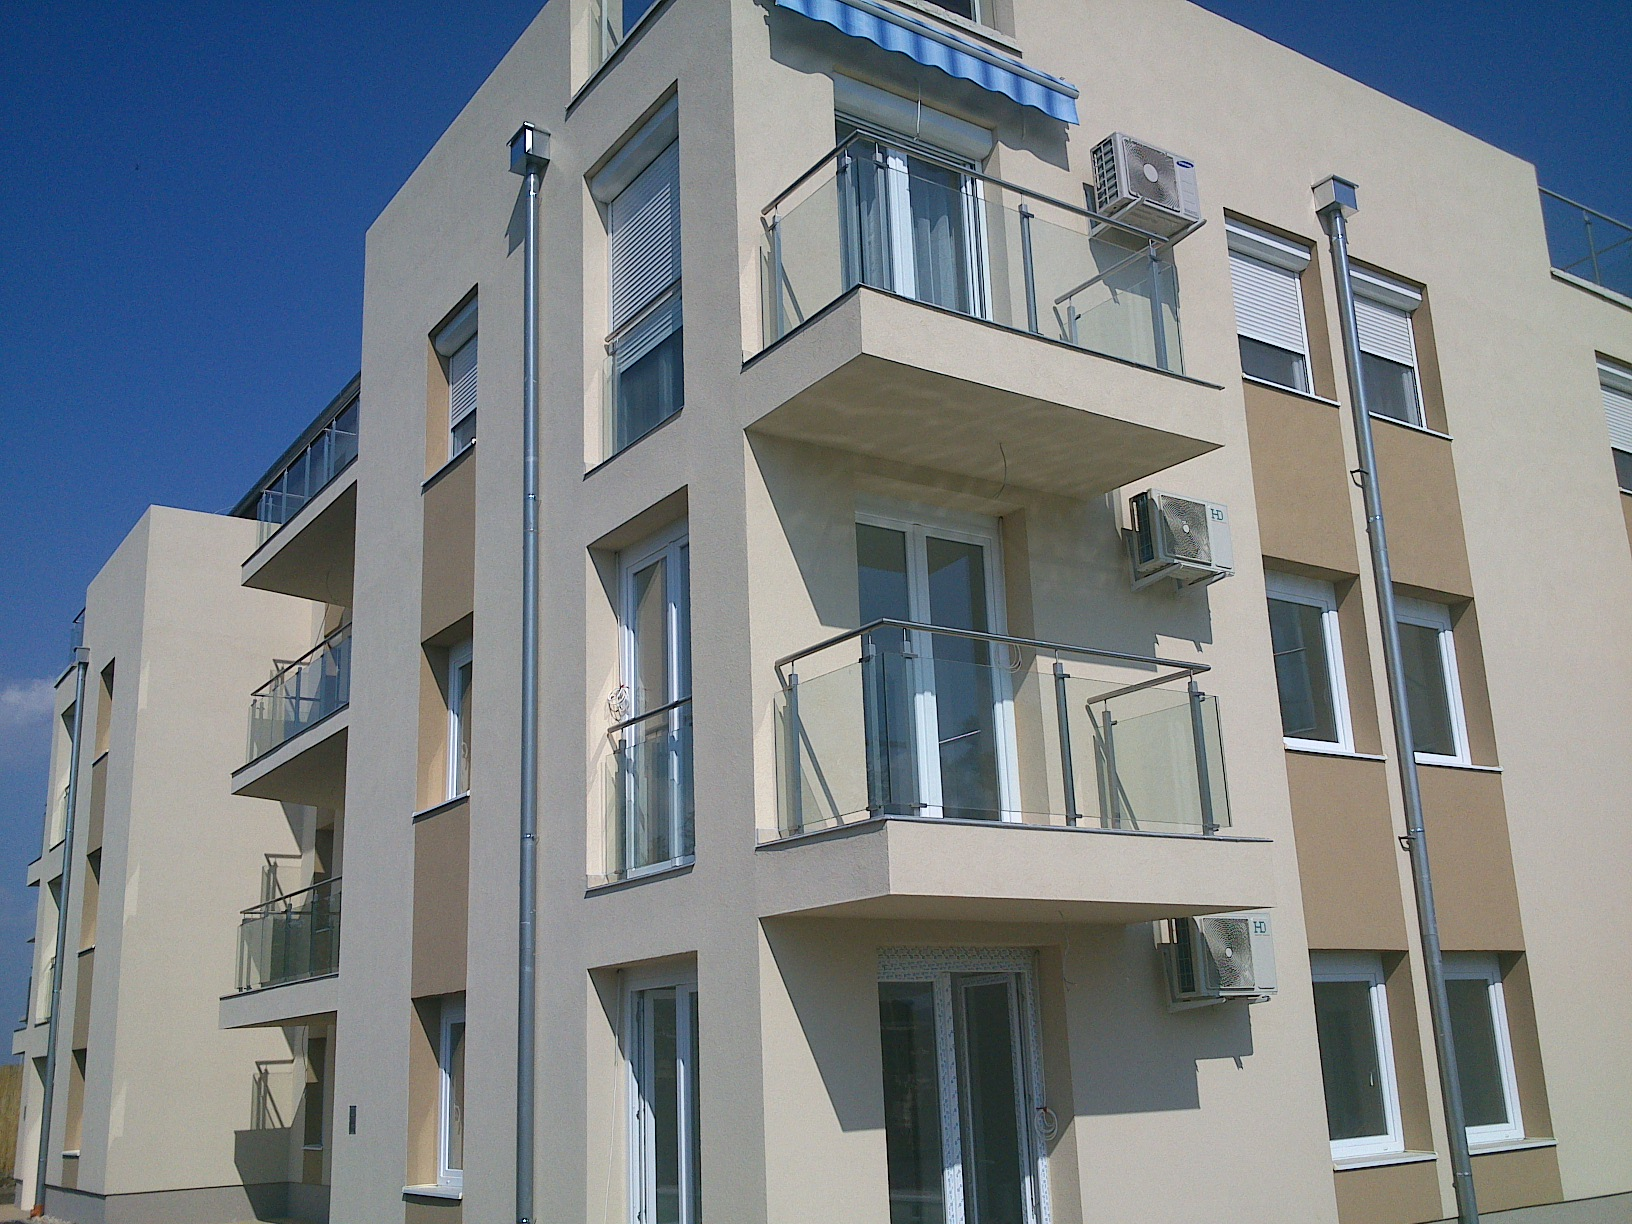 Stainless steel balcony railings with glass inserts